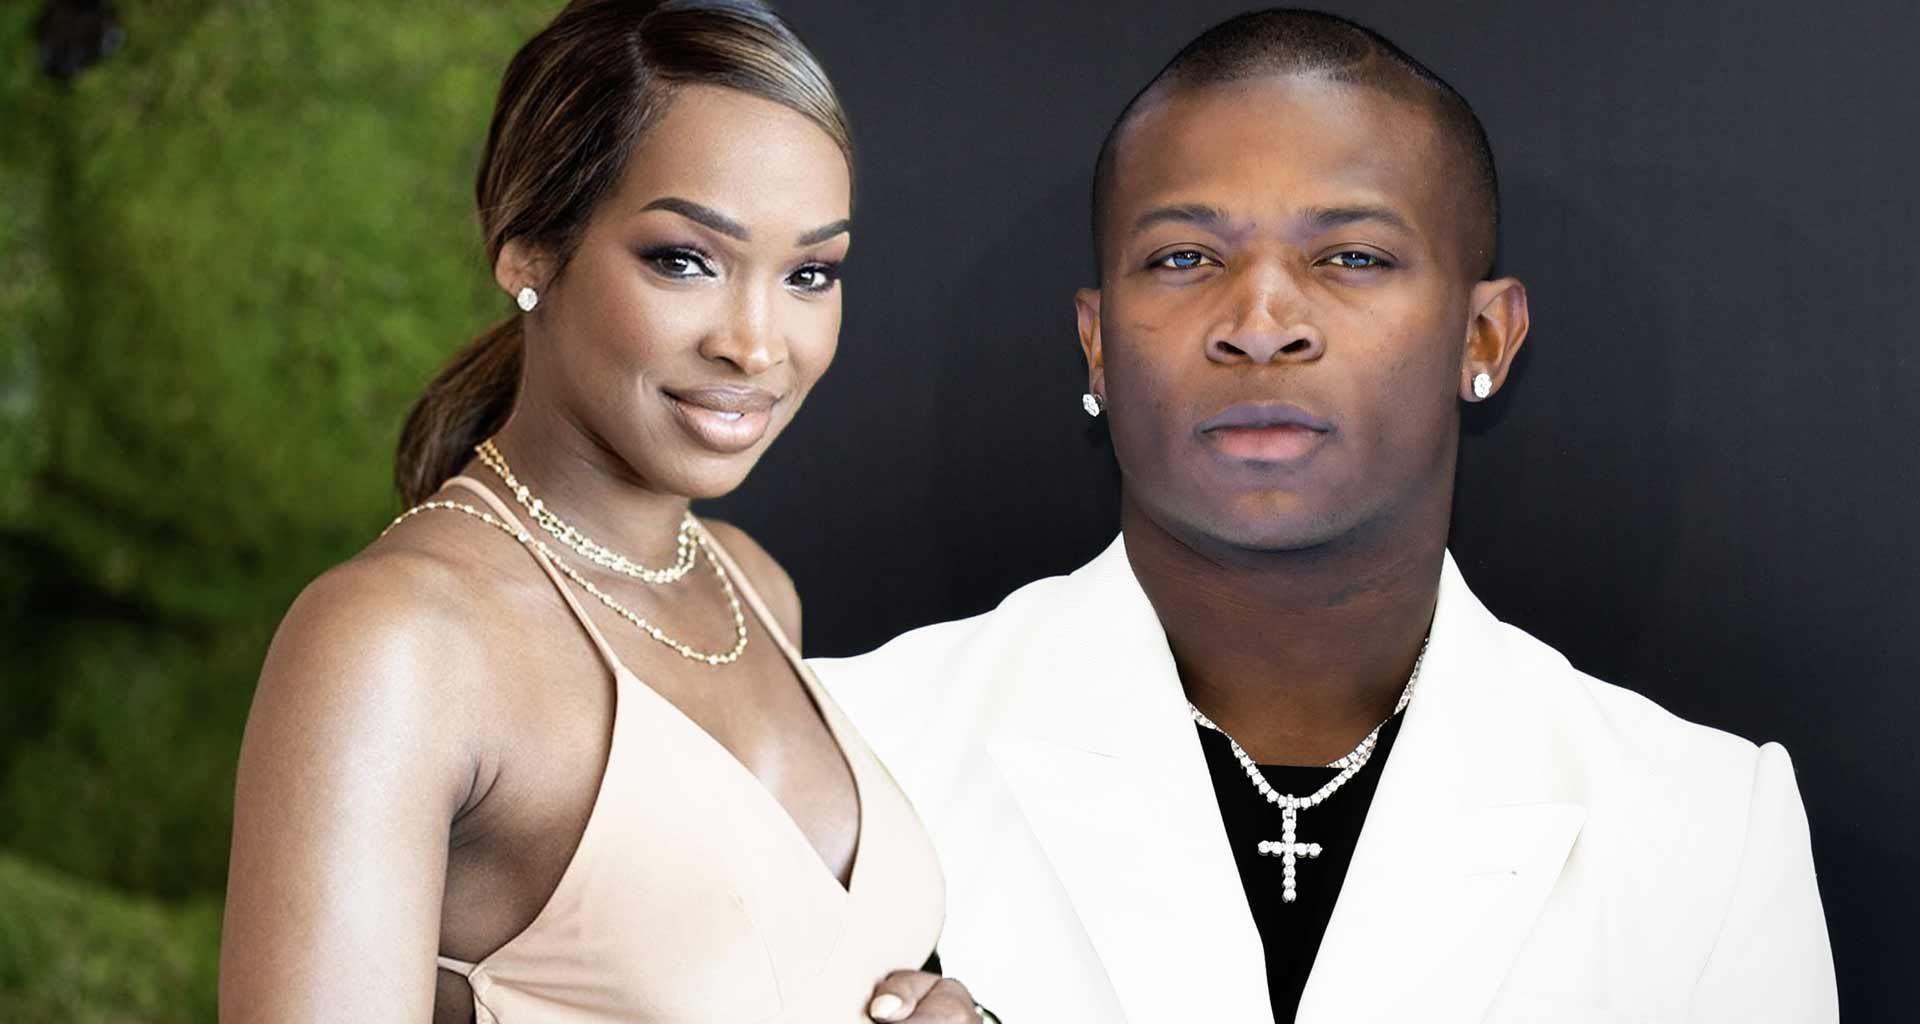 Malika Haqq - Here's How She Feels About Revealing Ex-Boyfriend O.T. Genasis Is Her Baby Daddy - Does She Regret Telling The World?